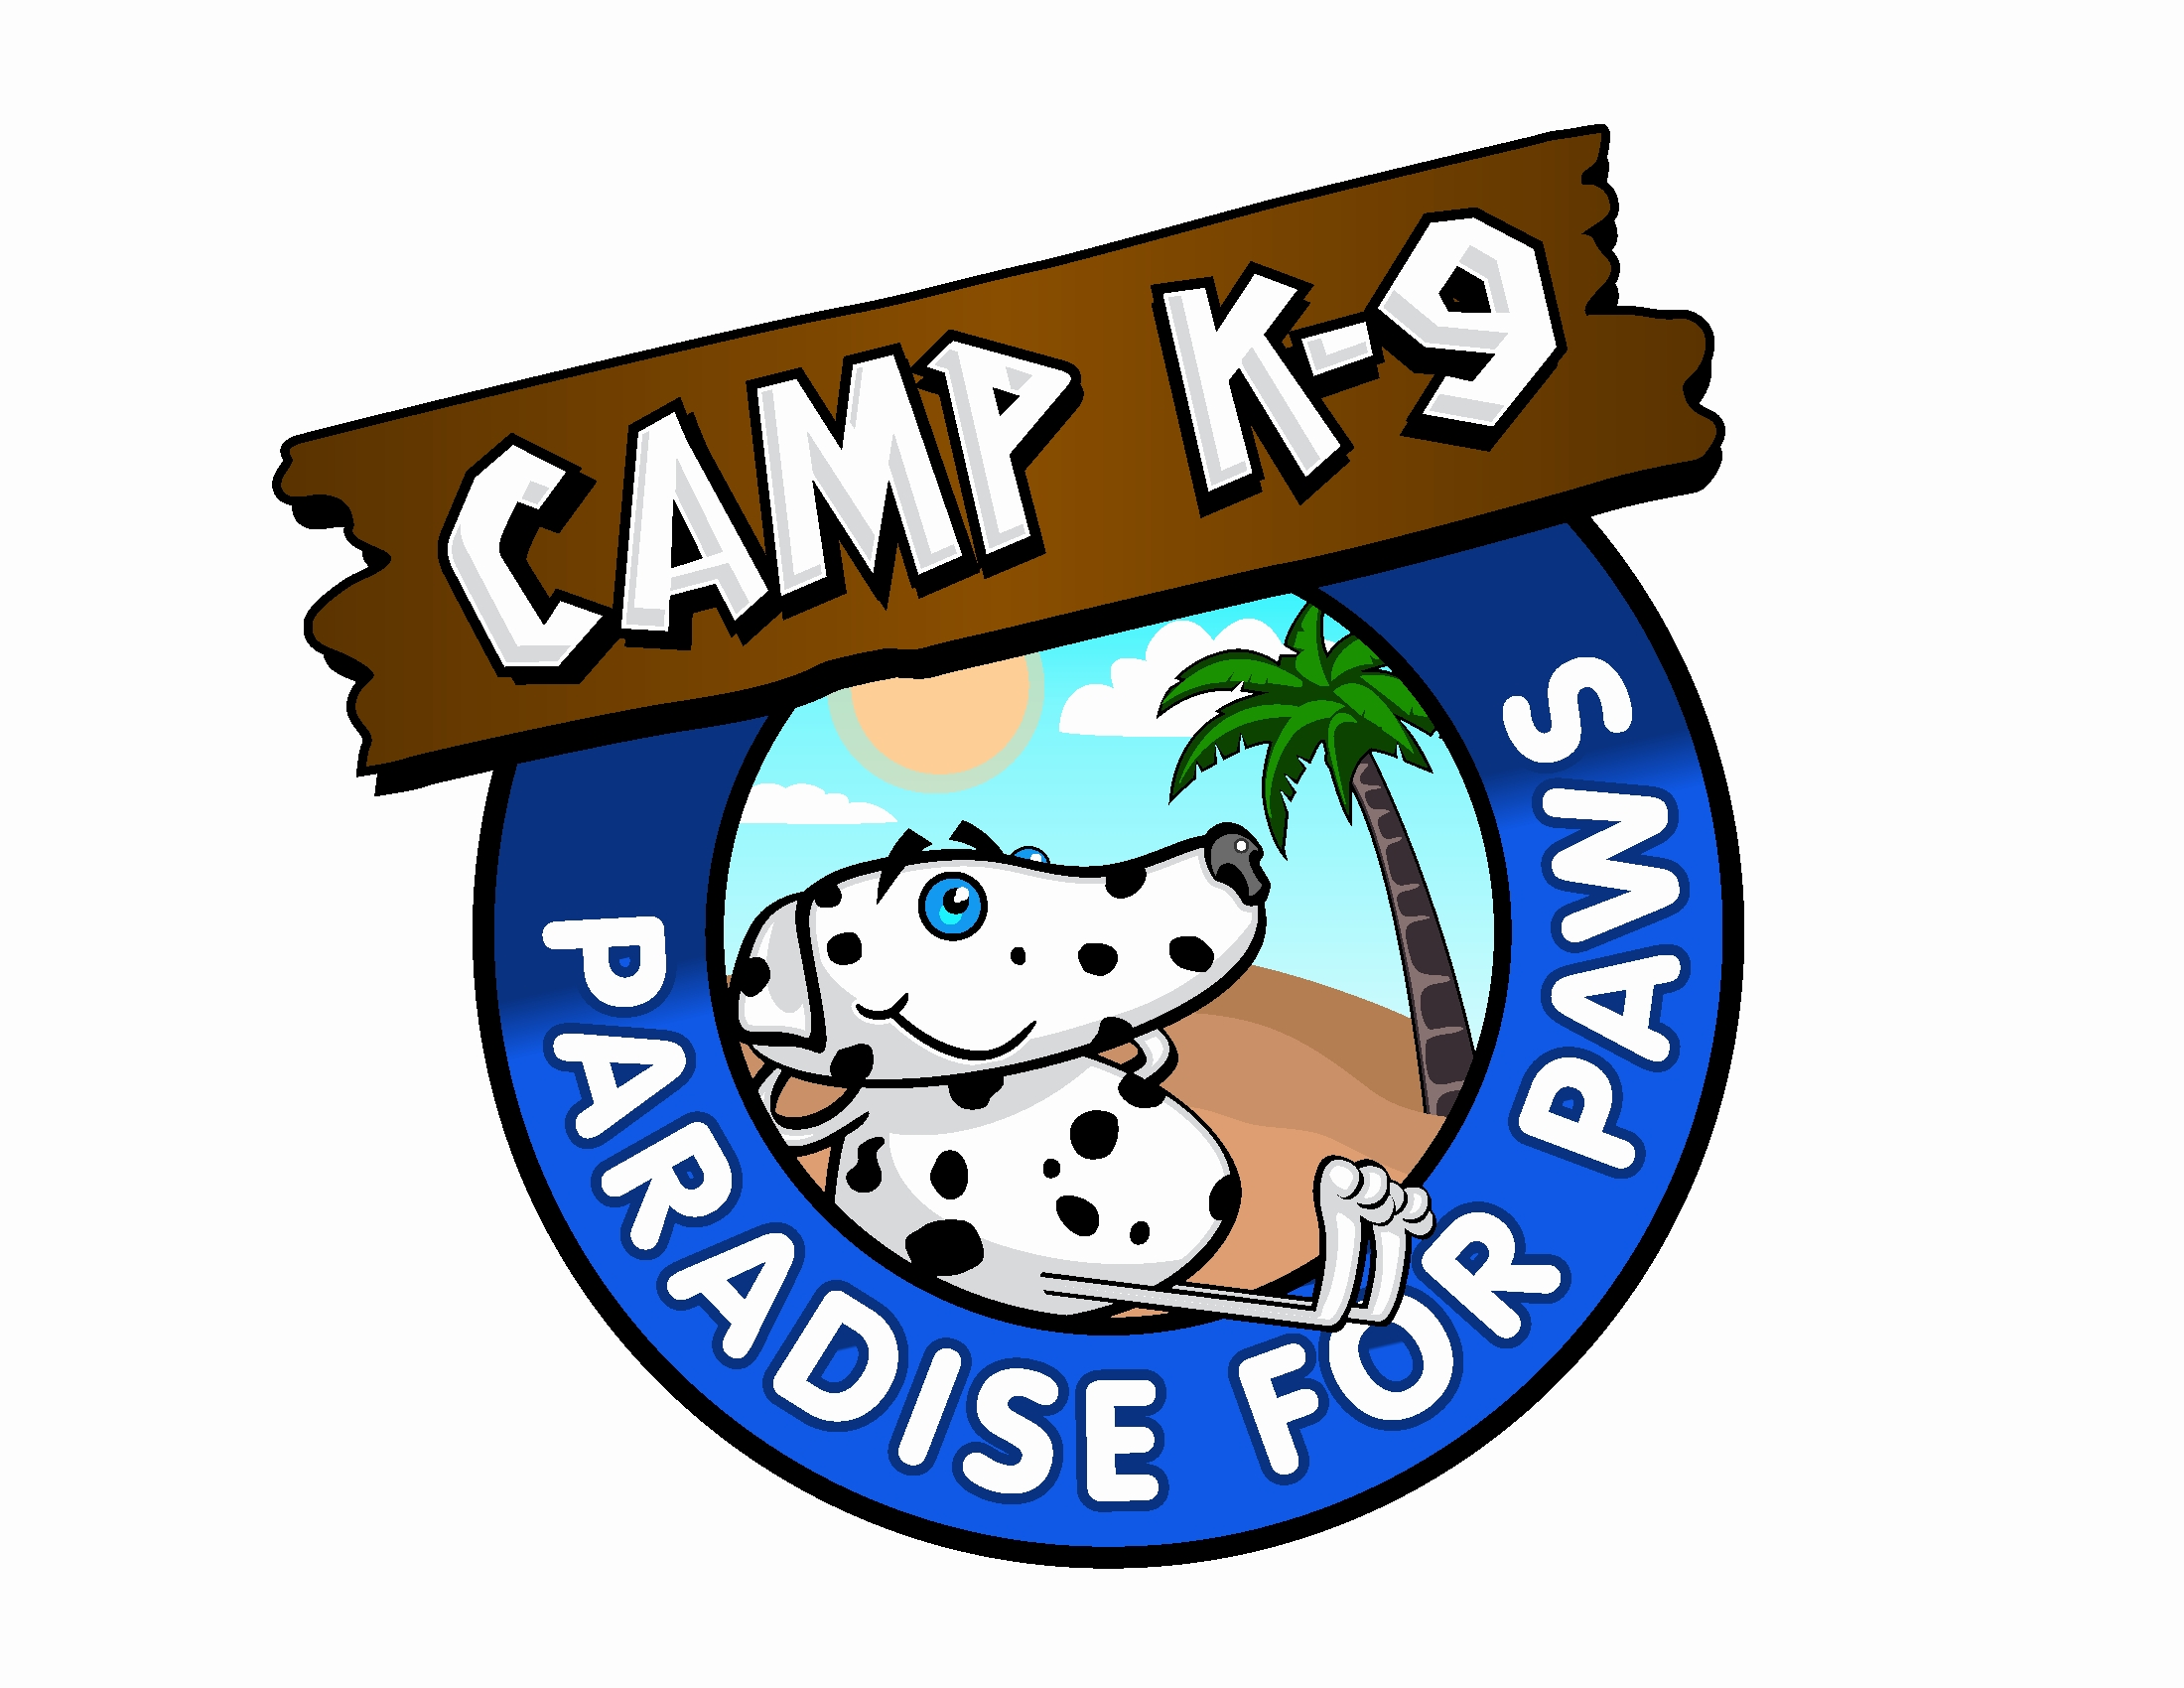 CampK9